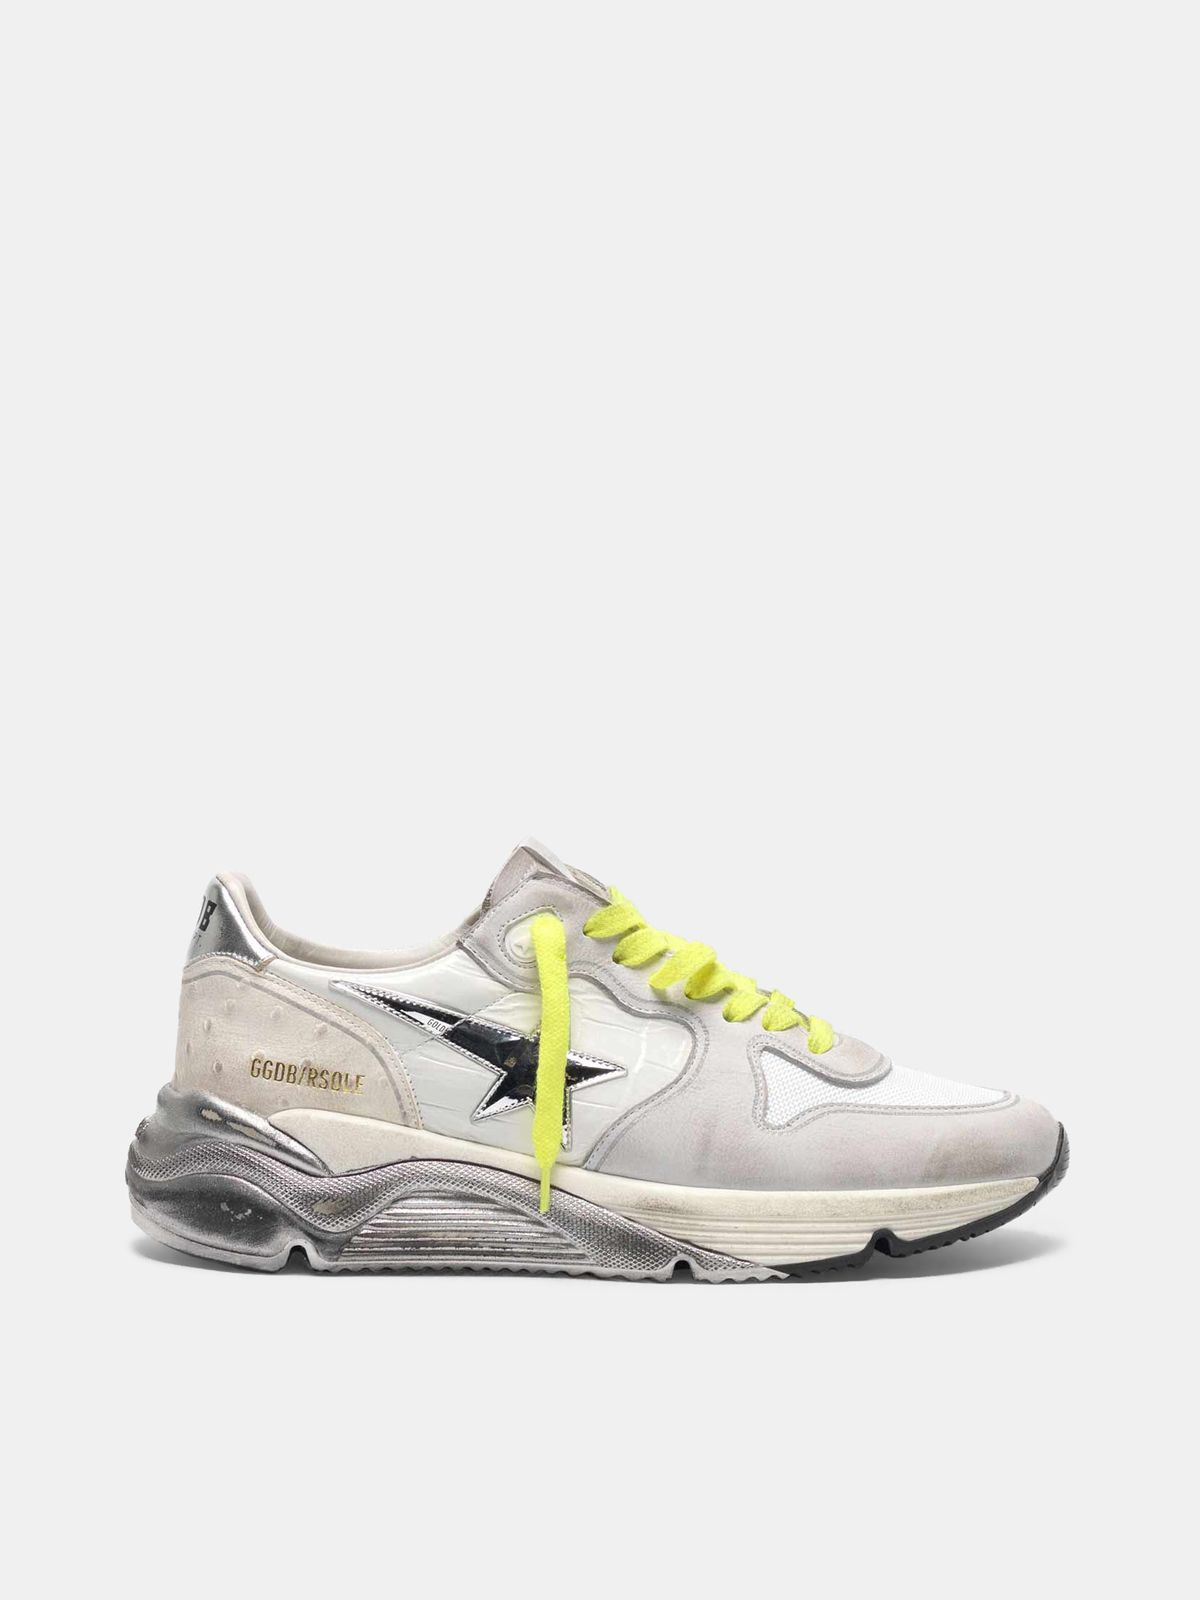 Golden Goose - Patchwork shades Running Sole sneakers with silver star in